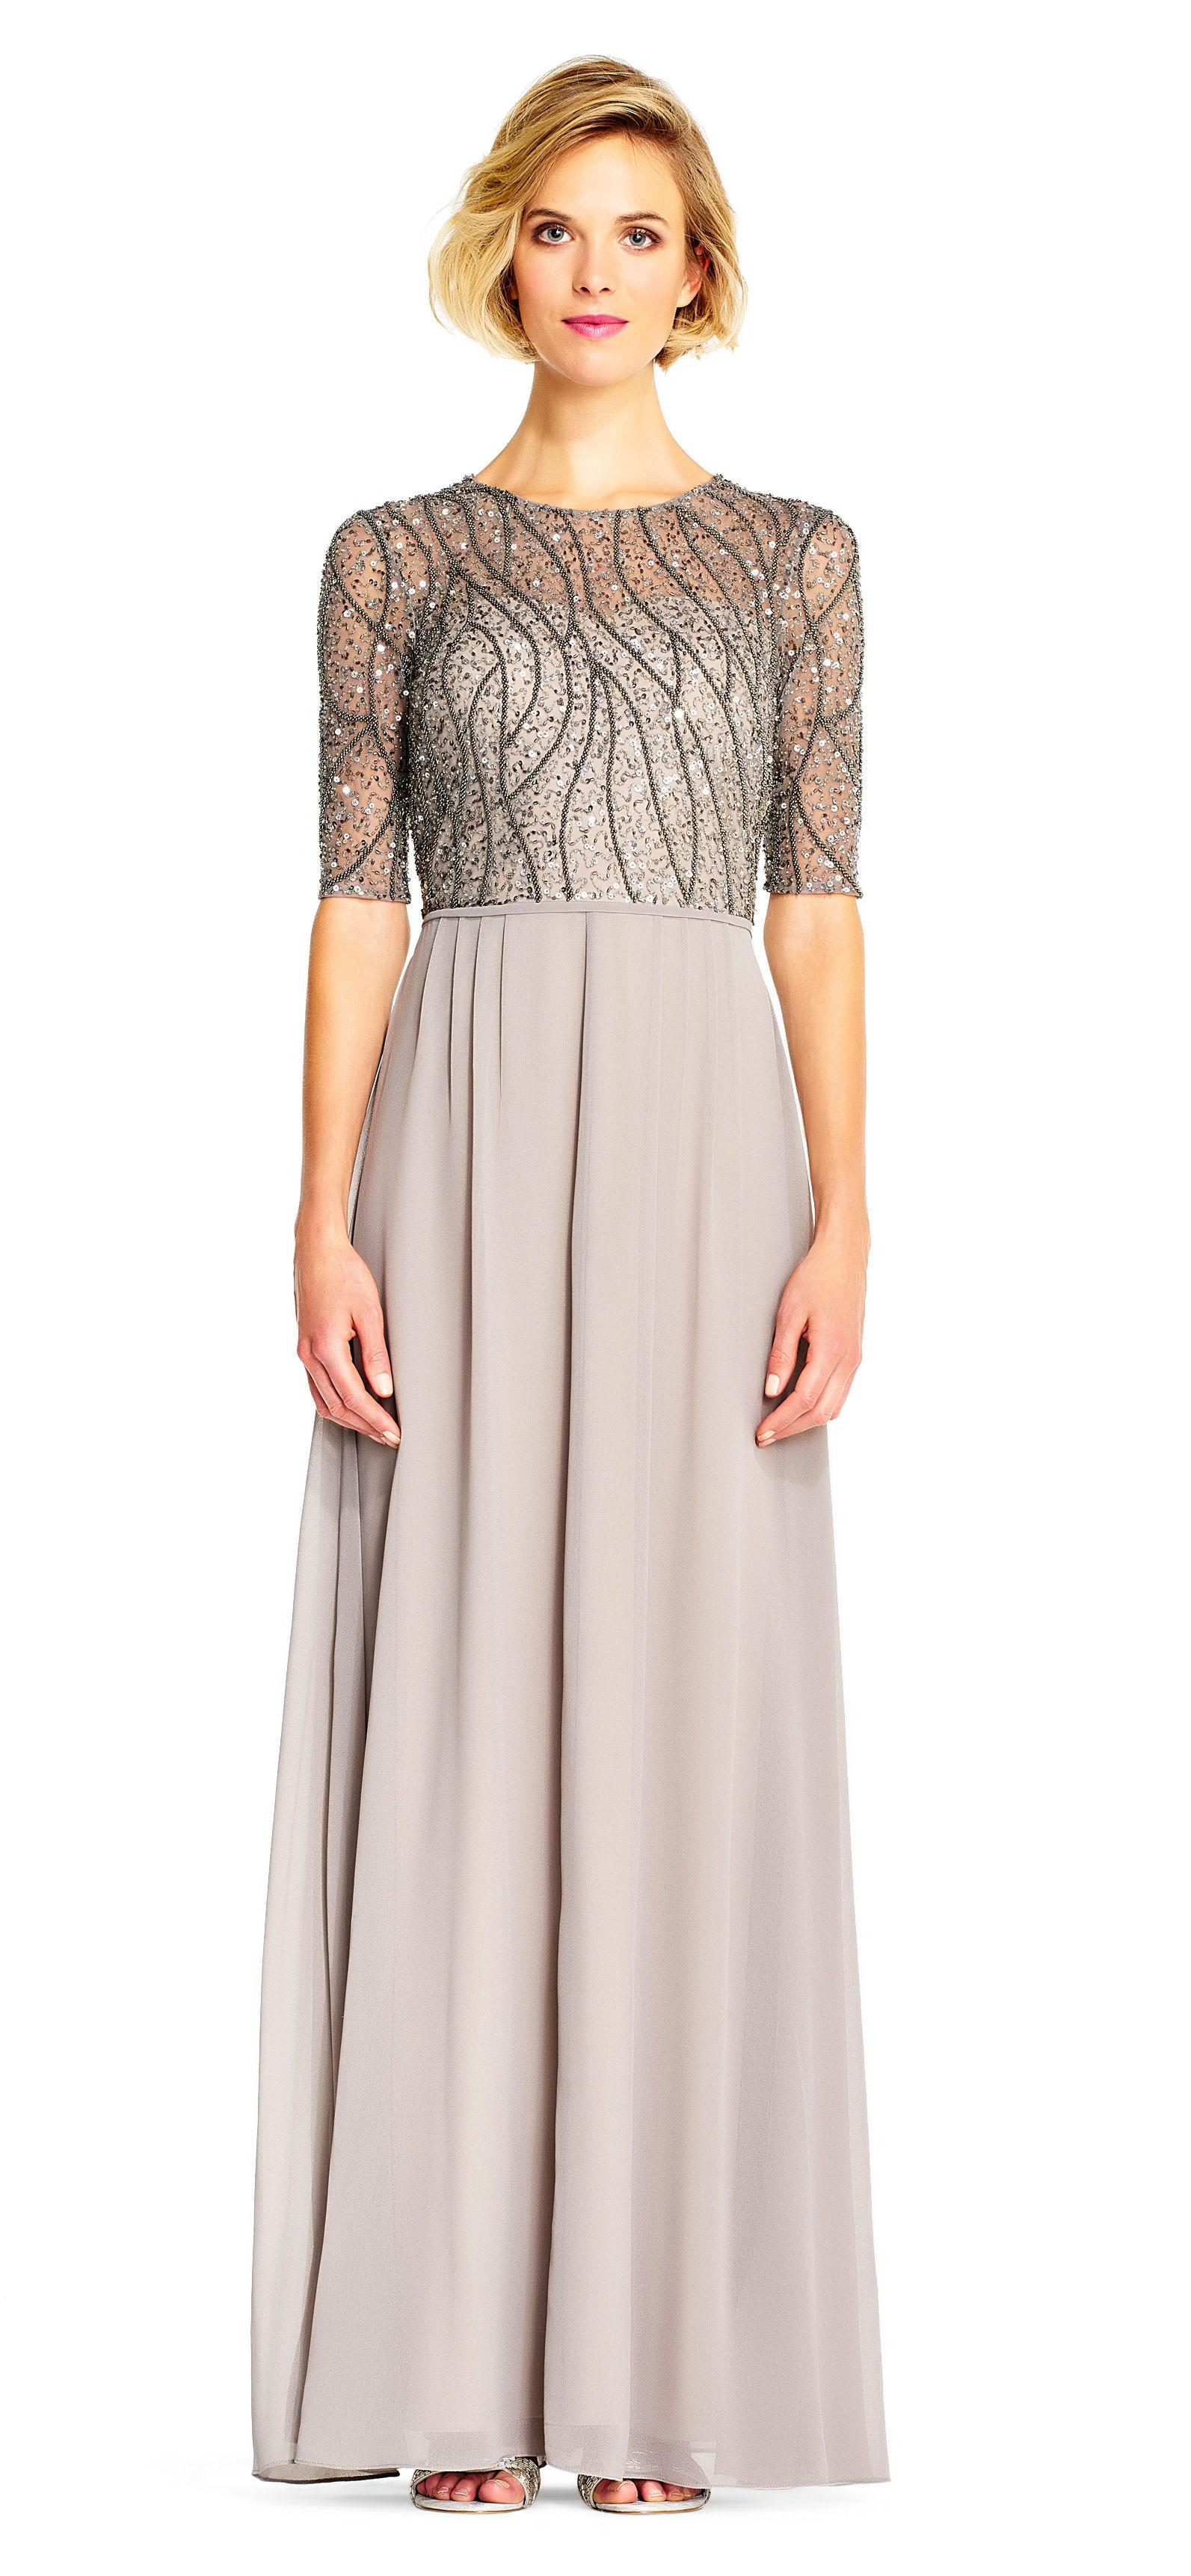 Lyst - Adrianna Papell Sequin Beaded Chiffon Gown With Elbow Sleeves